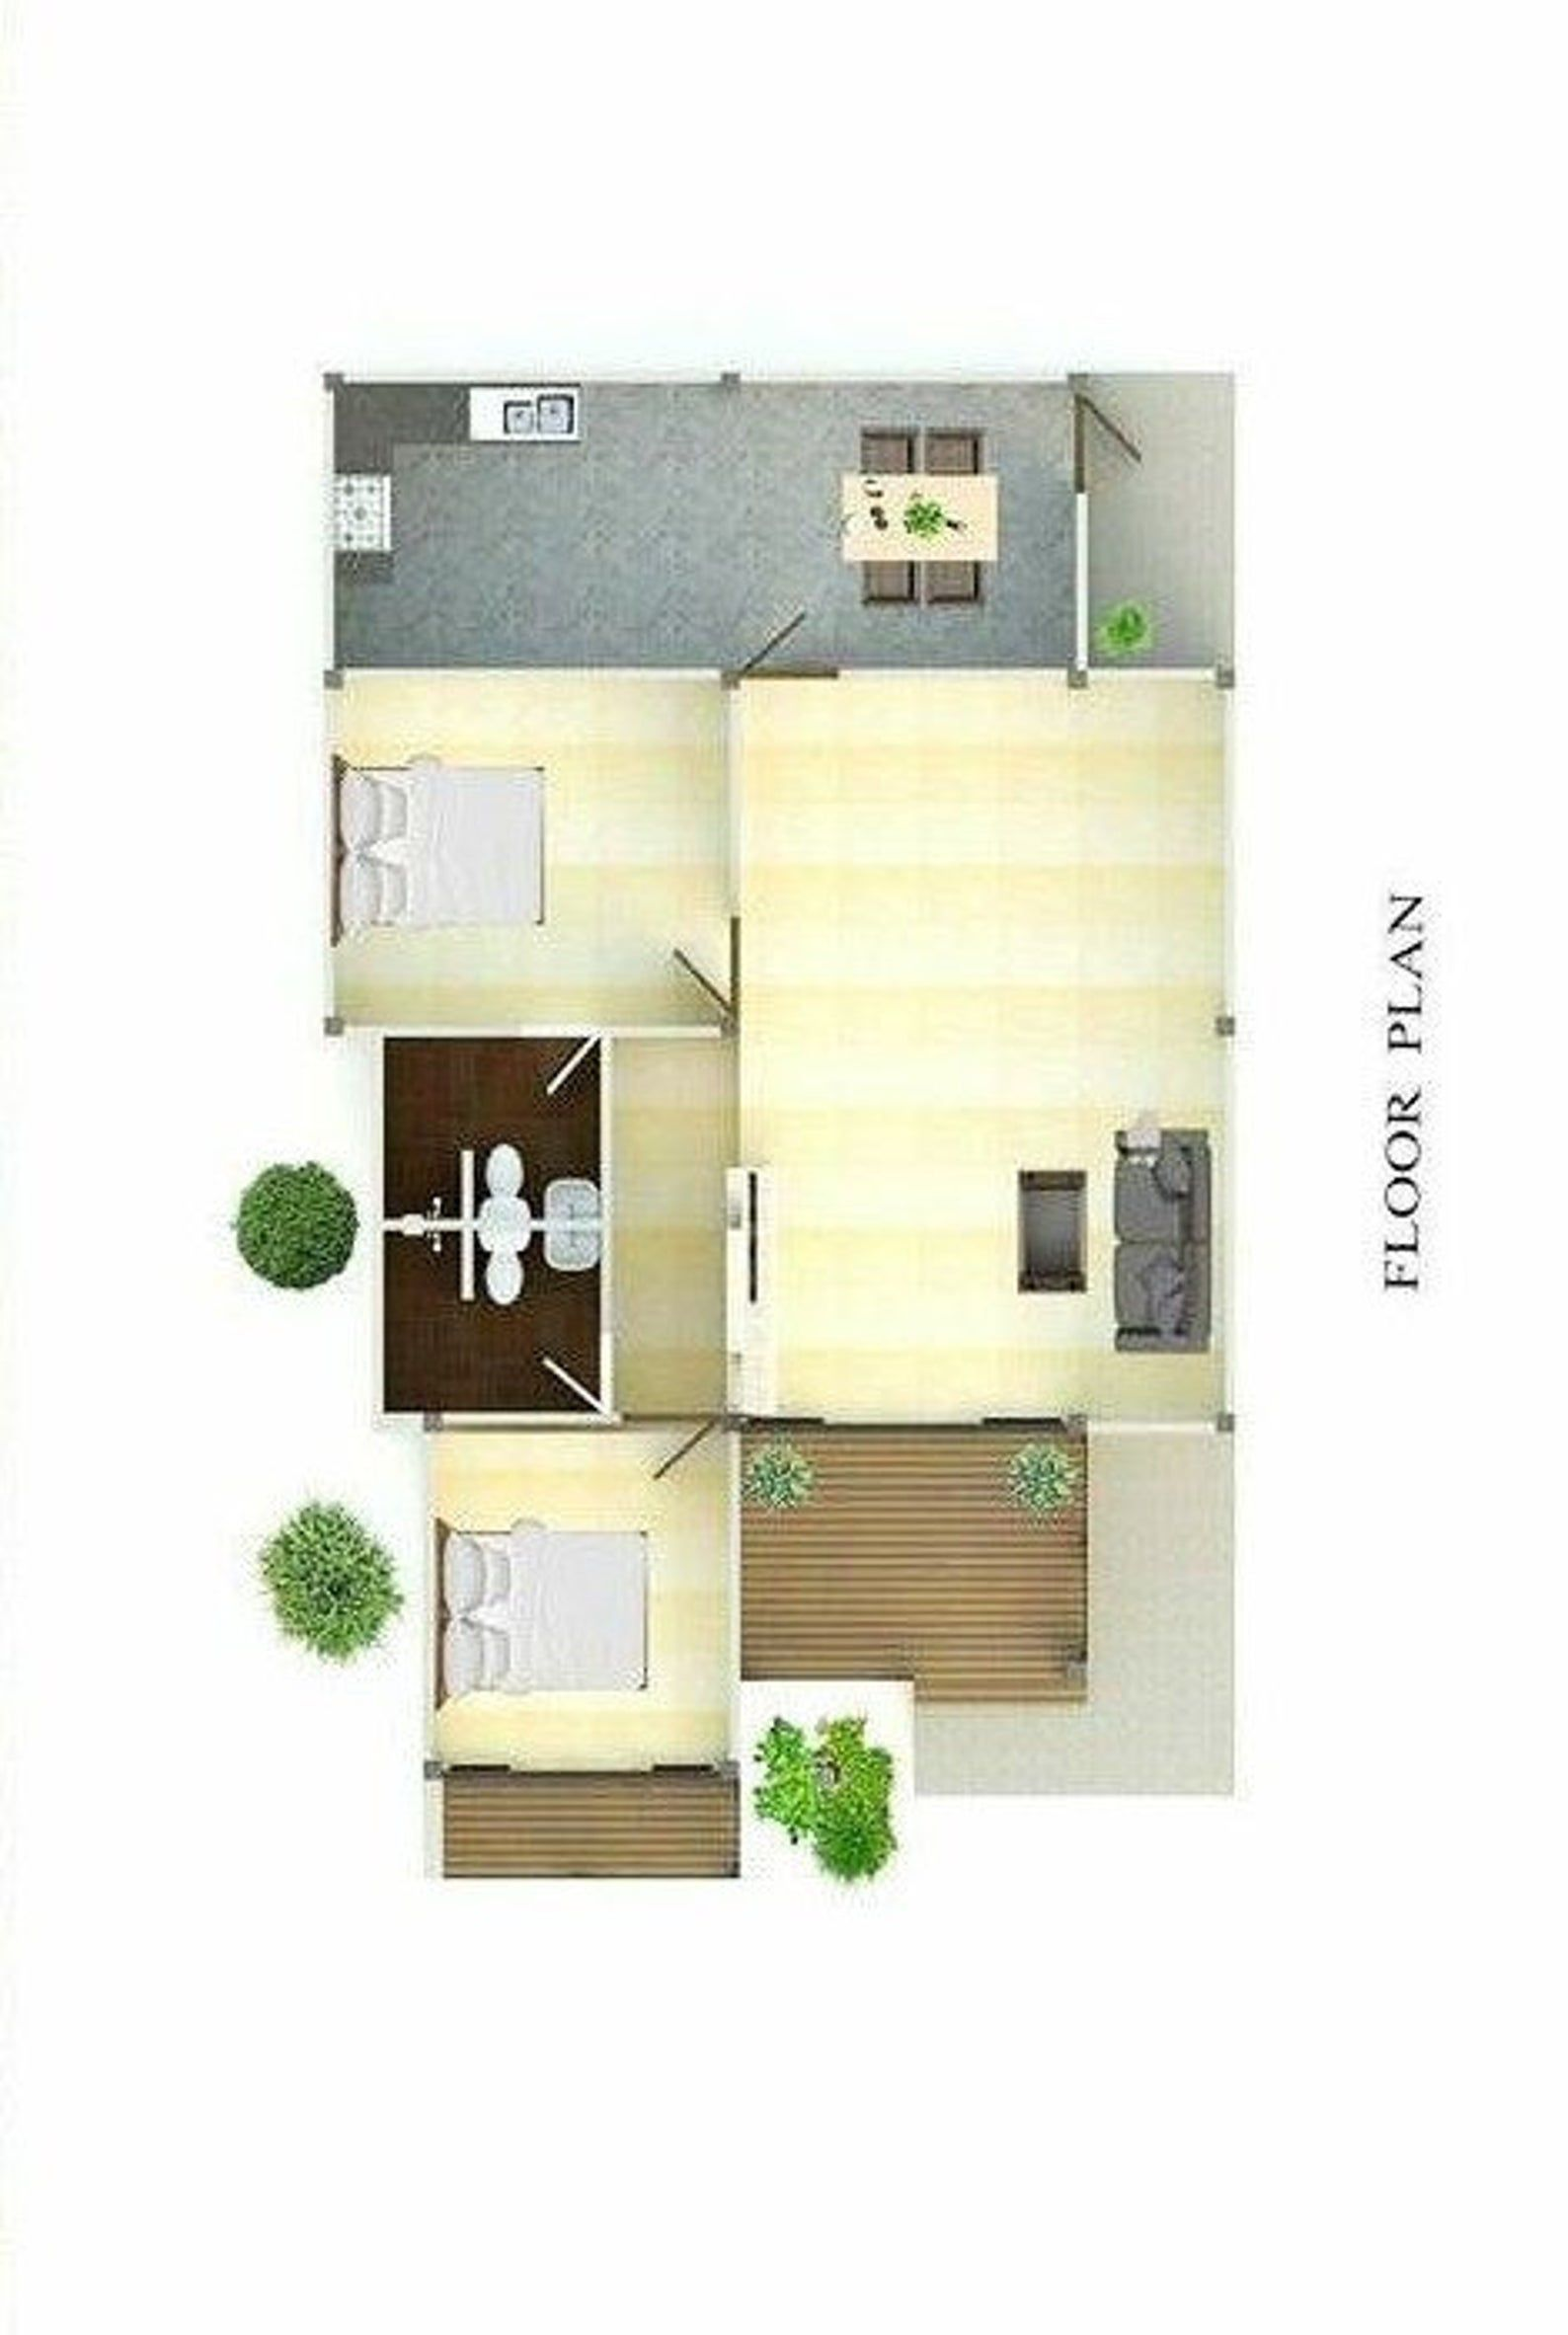 Modern Granny s Tiny House Home Floor Cabin Cottege Building plans 2 Bedroom & 2 bath room with AUTO CAD File